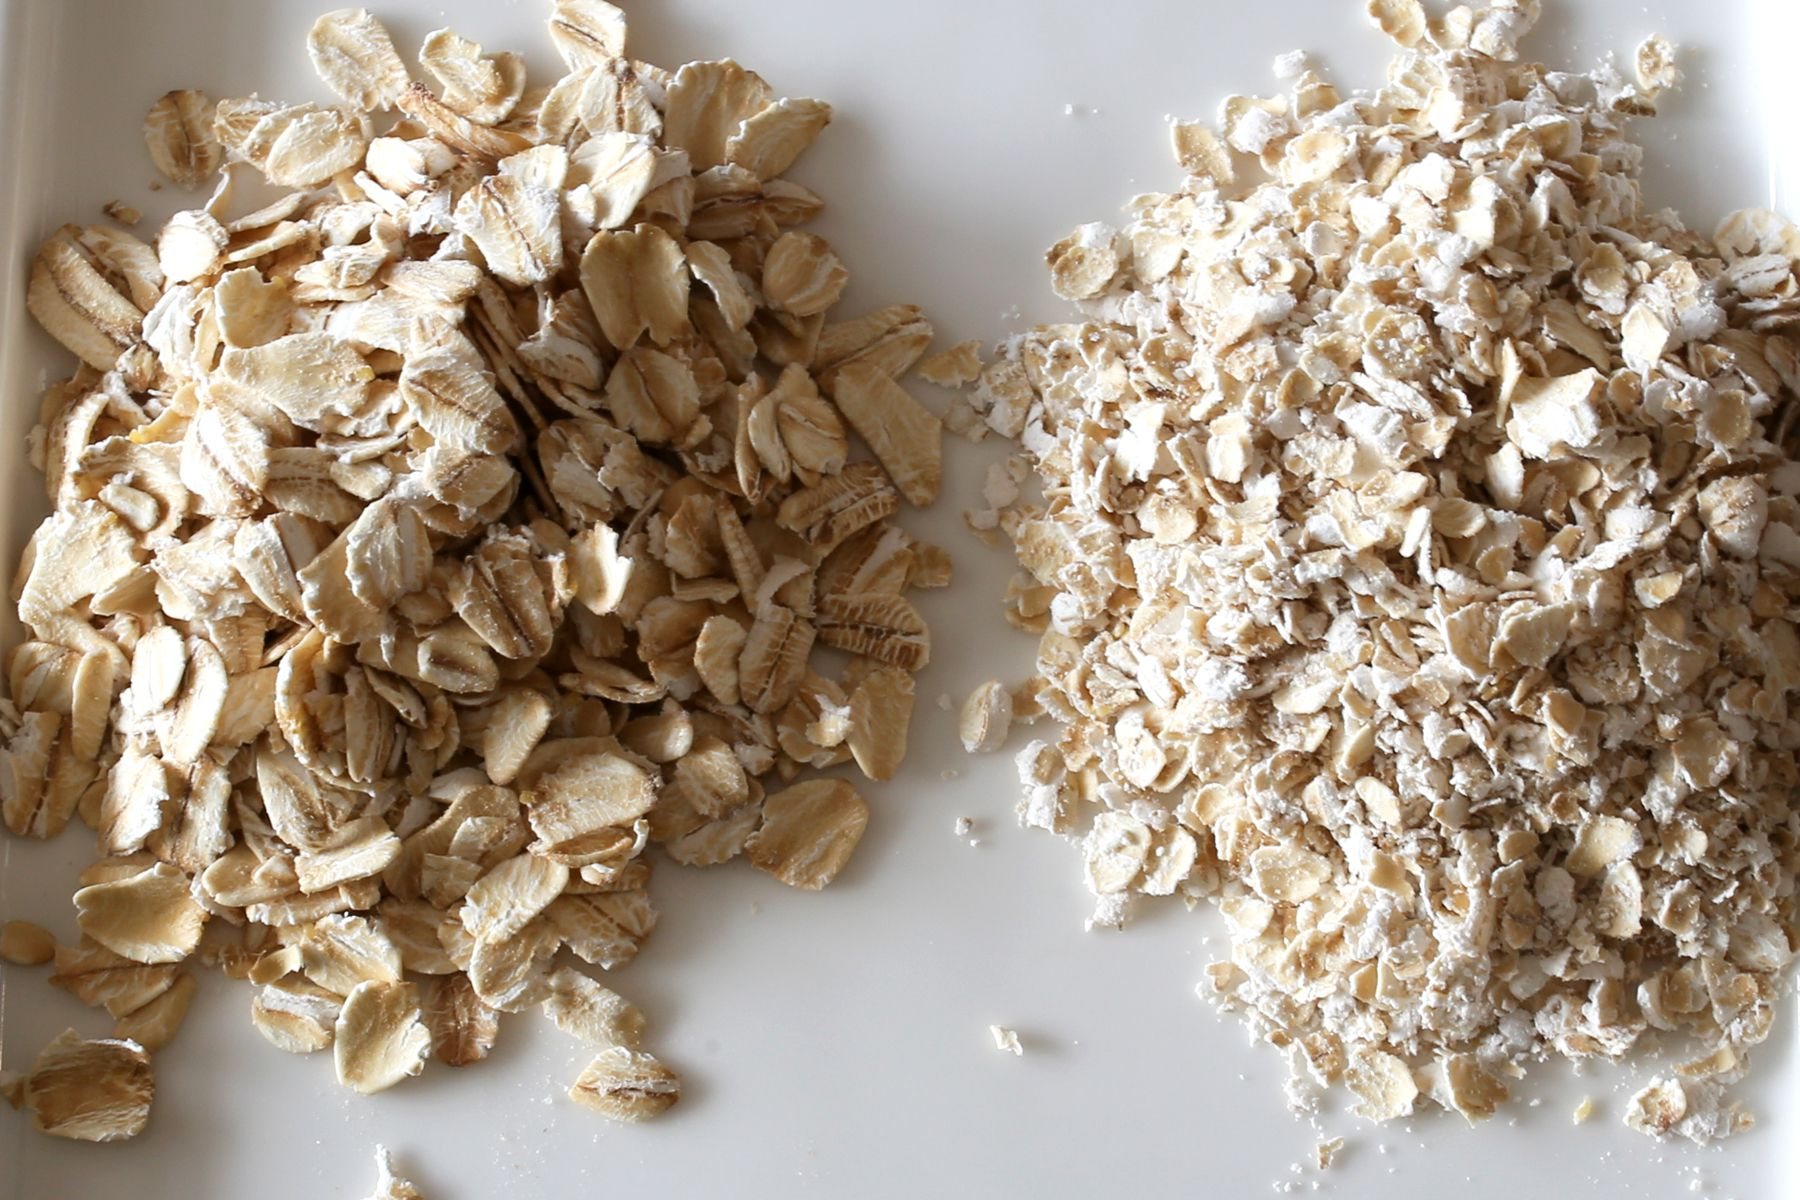 Differences Between Rolled Steel Cut And Instant Oats